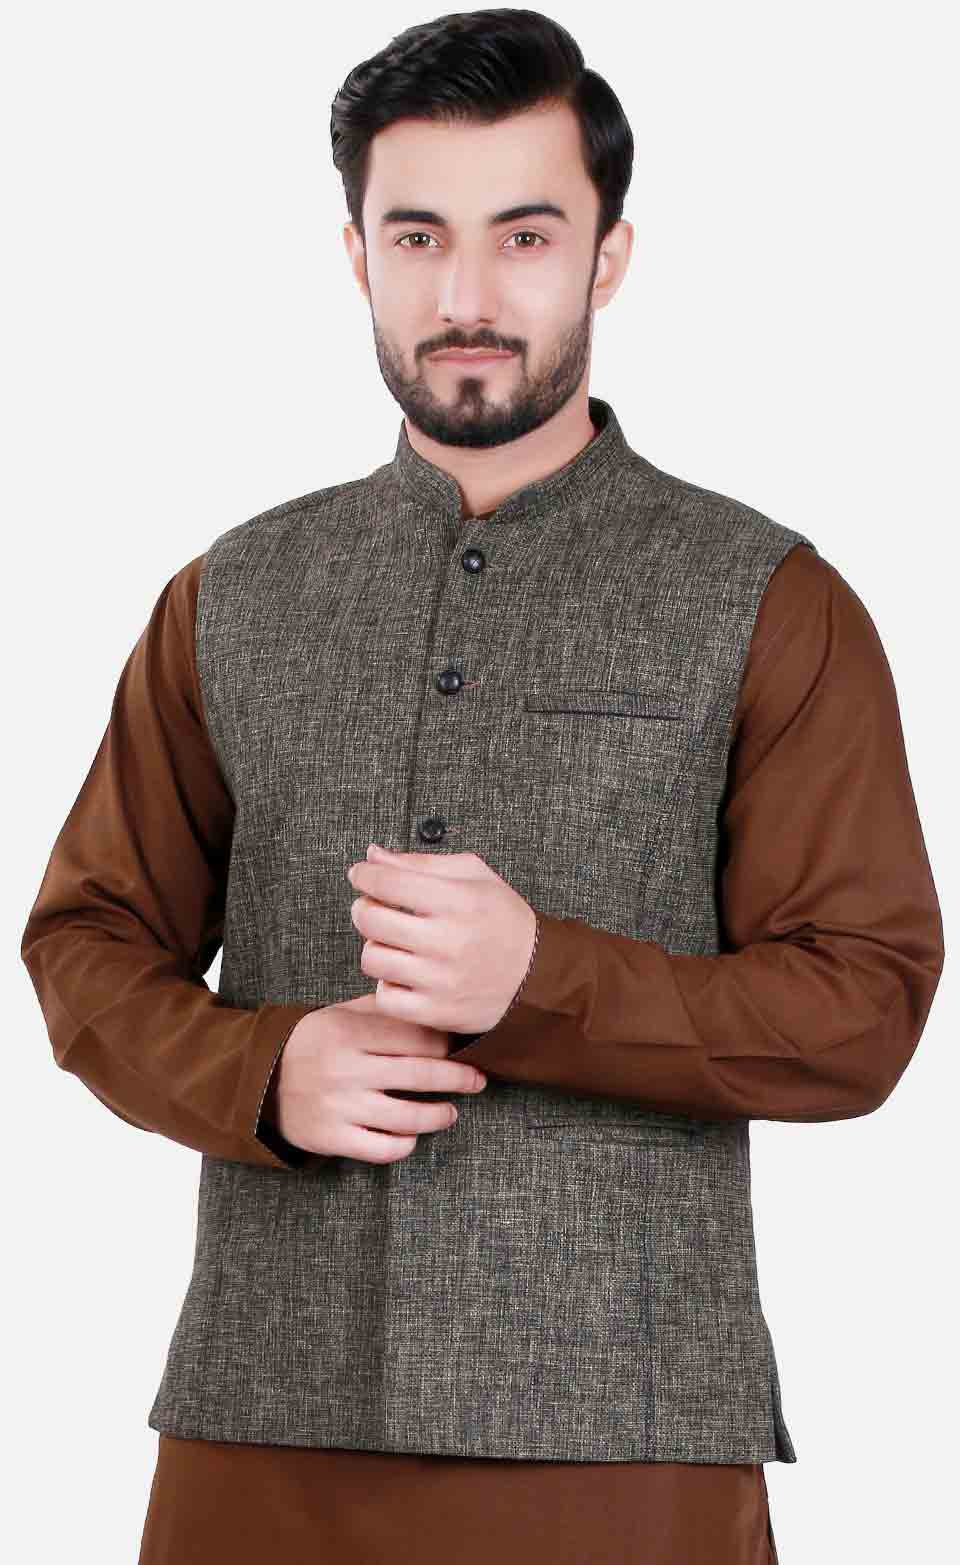 Grey waistcoat designs 2017 with brown kurta for boys in Pakistan